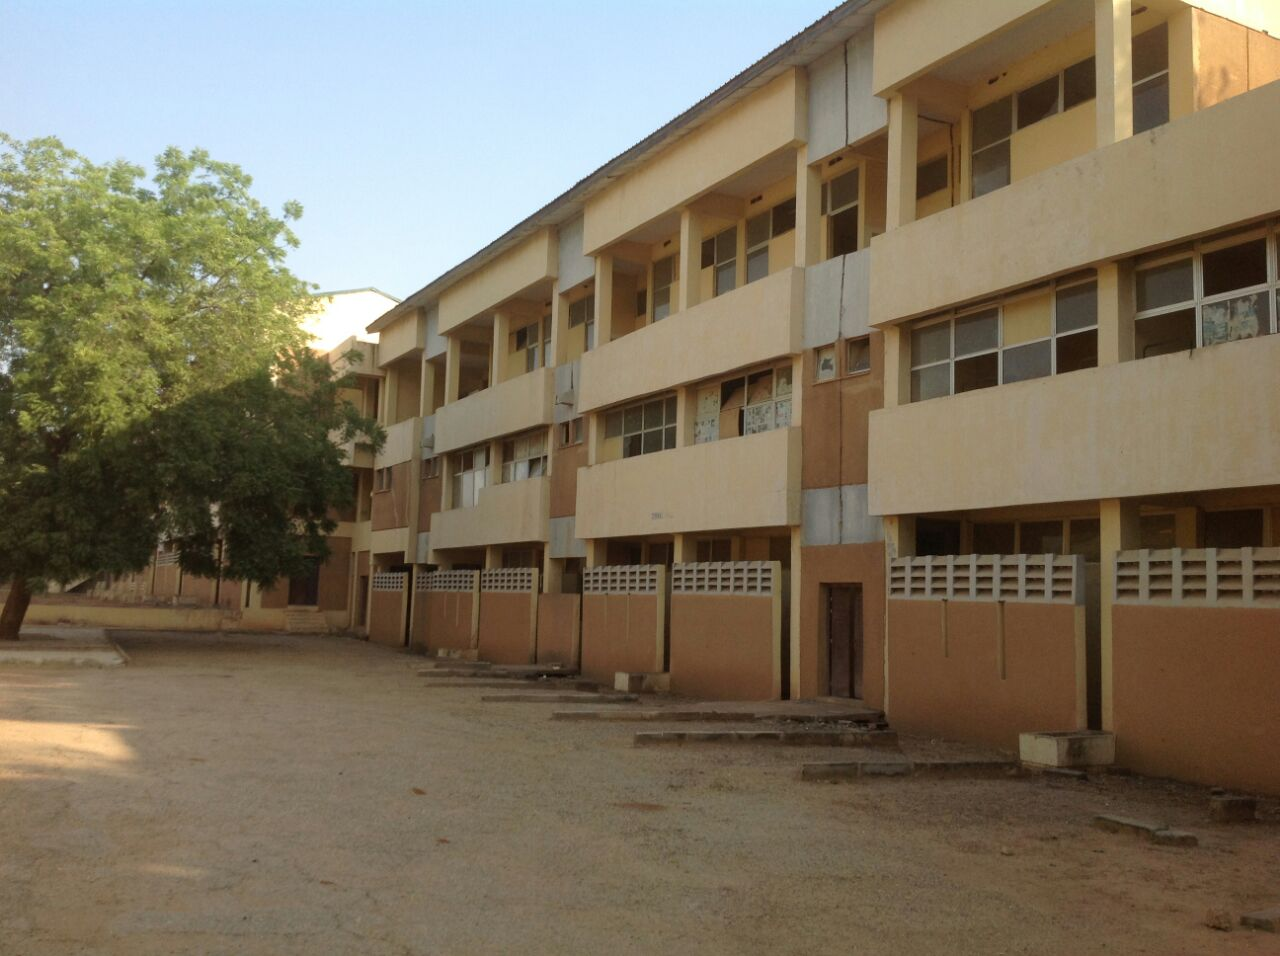 Students' Hostel Accommodation